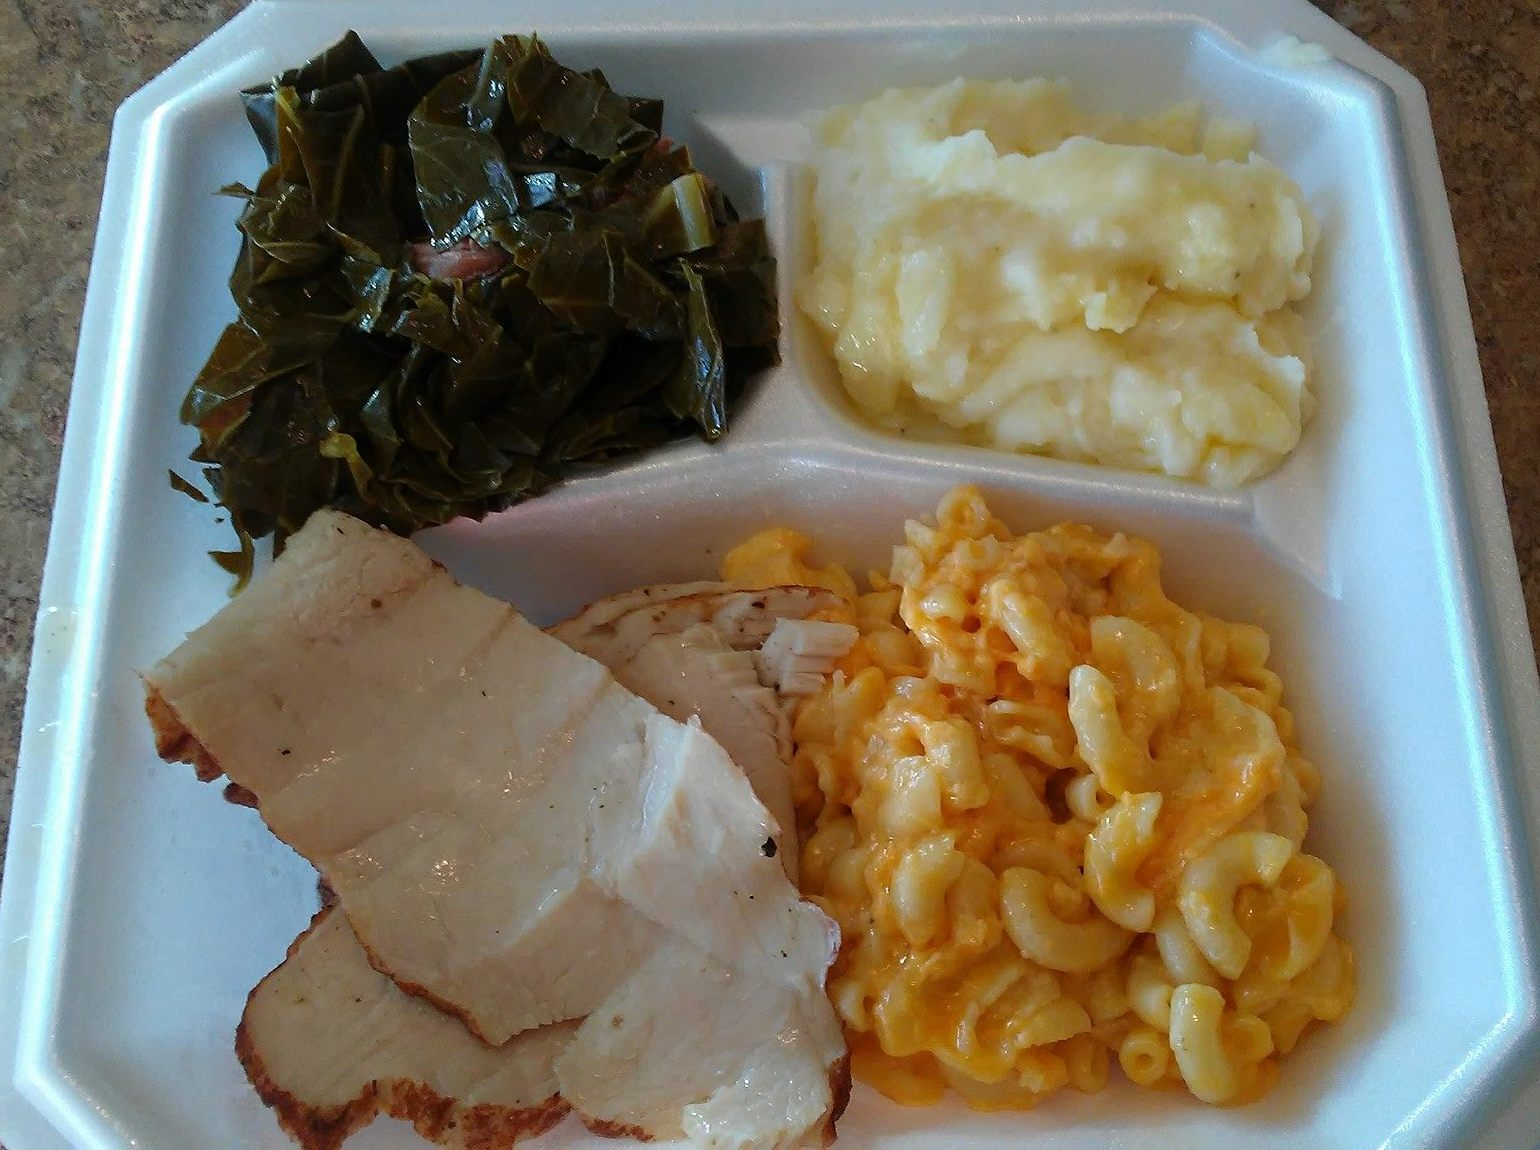 Dinners at Soulos Cafe come with two classic soul food sides, like the macaroni and cheese and collard greens with the sliced turkey. (Photo: Soulos Cafe)